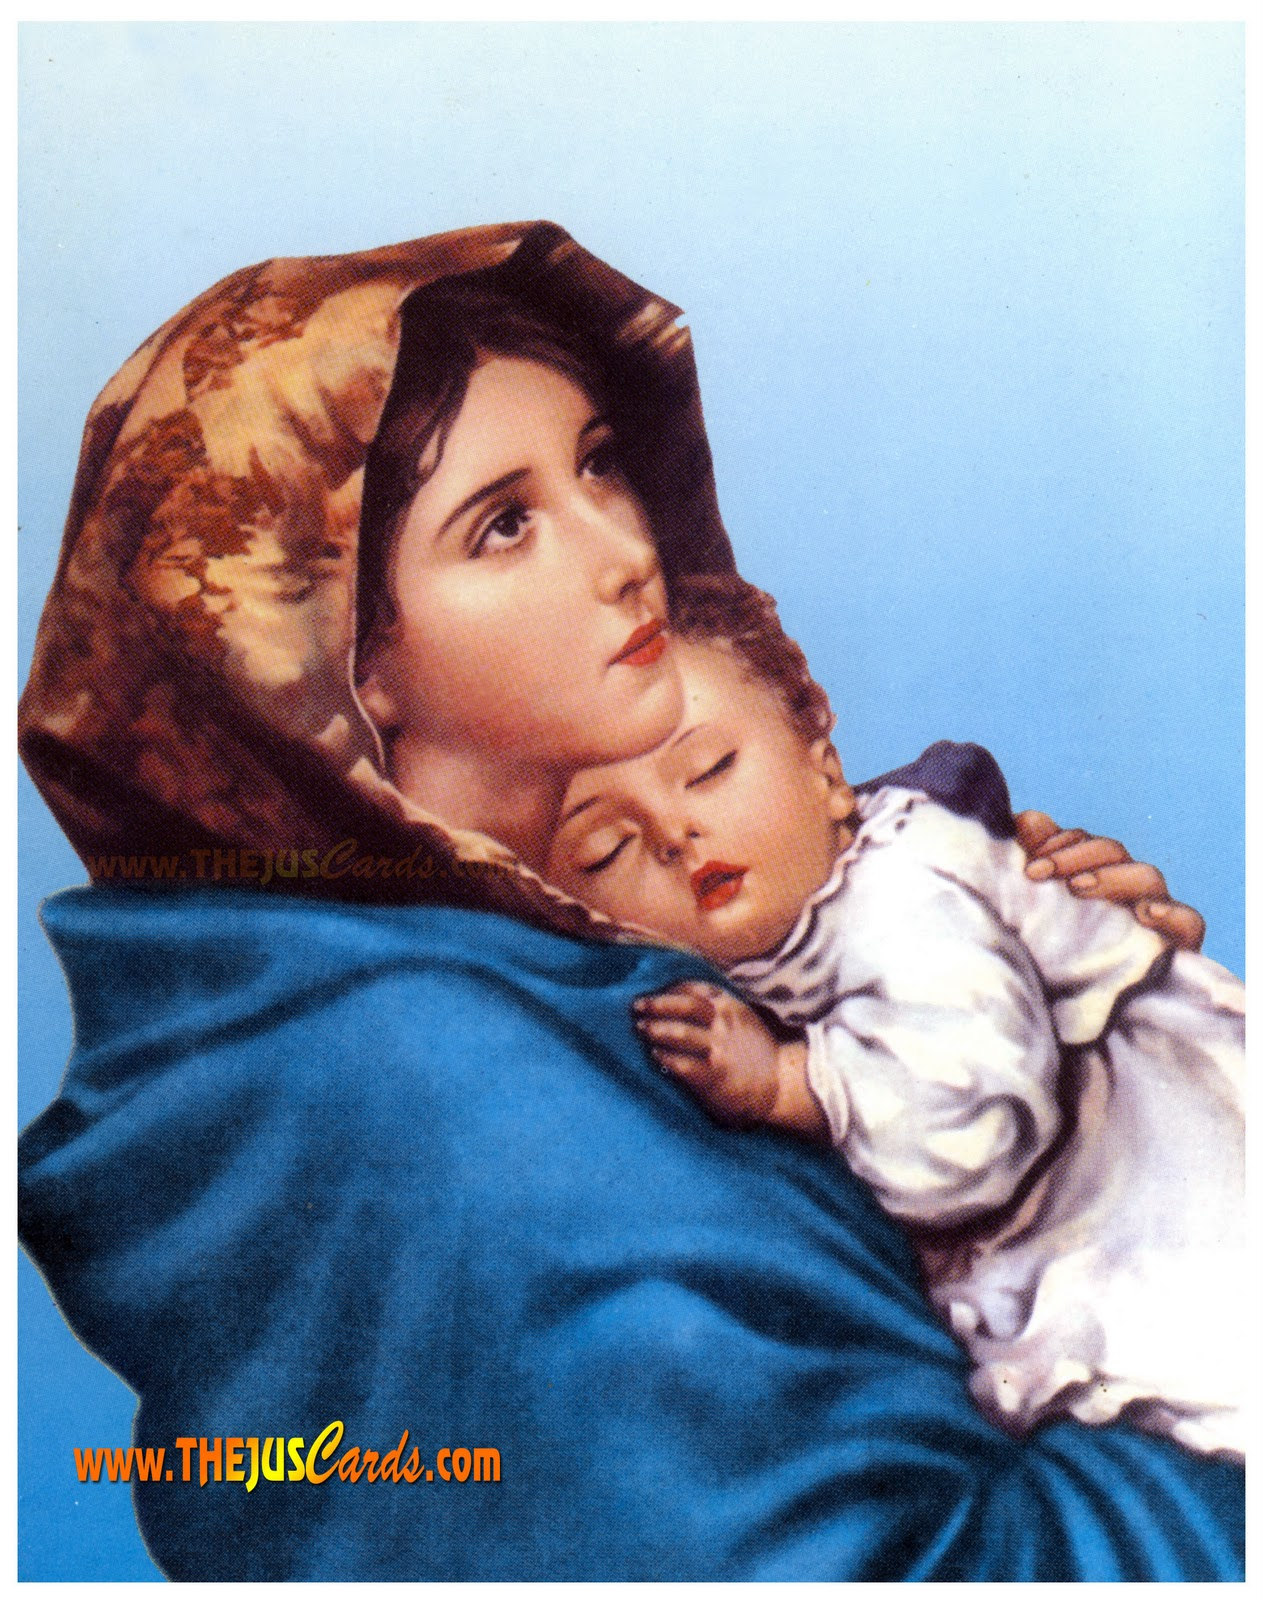 an analysis of marys understanding of her and jesuss roles in the movie mary mother of jesus During the christmas season, people hear the familiar account of mary's role as the mother of jesusthe popular story uses facts from the first two chapters of matthew and luke in the new testament, but surprisingly little of what is popularly believed about mary actually comes from the bible, since nonbiblical traditions and false dogma.